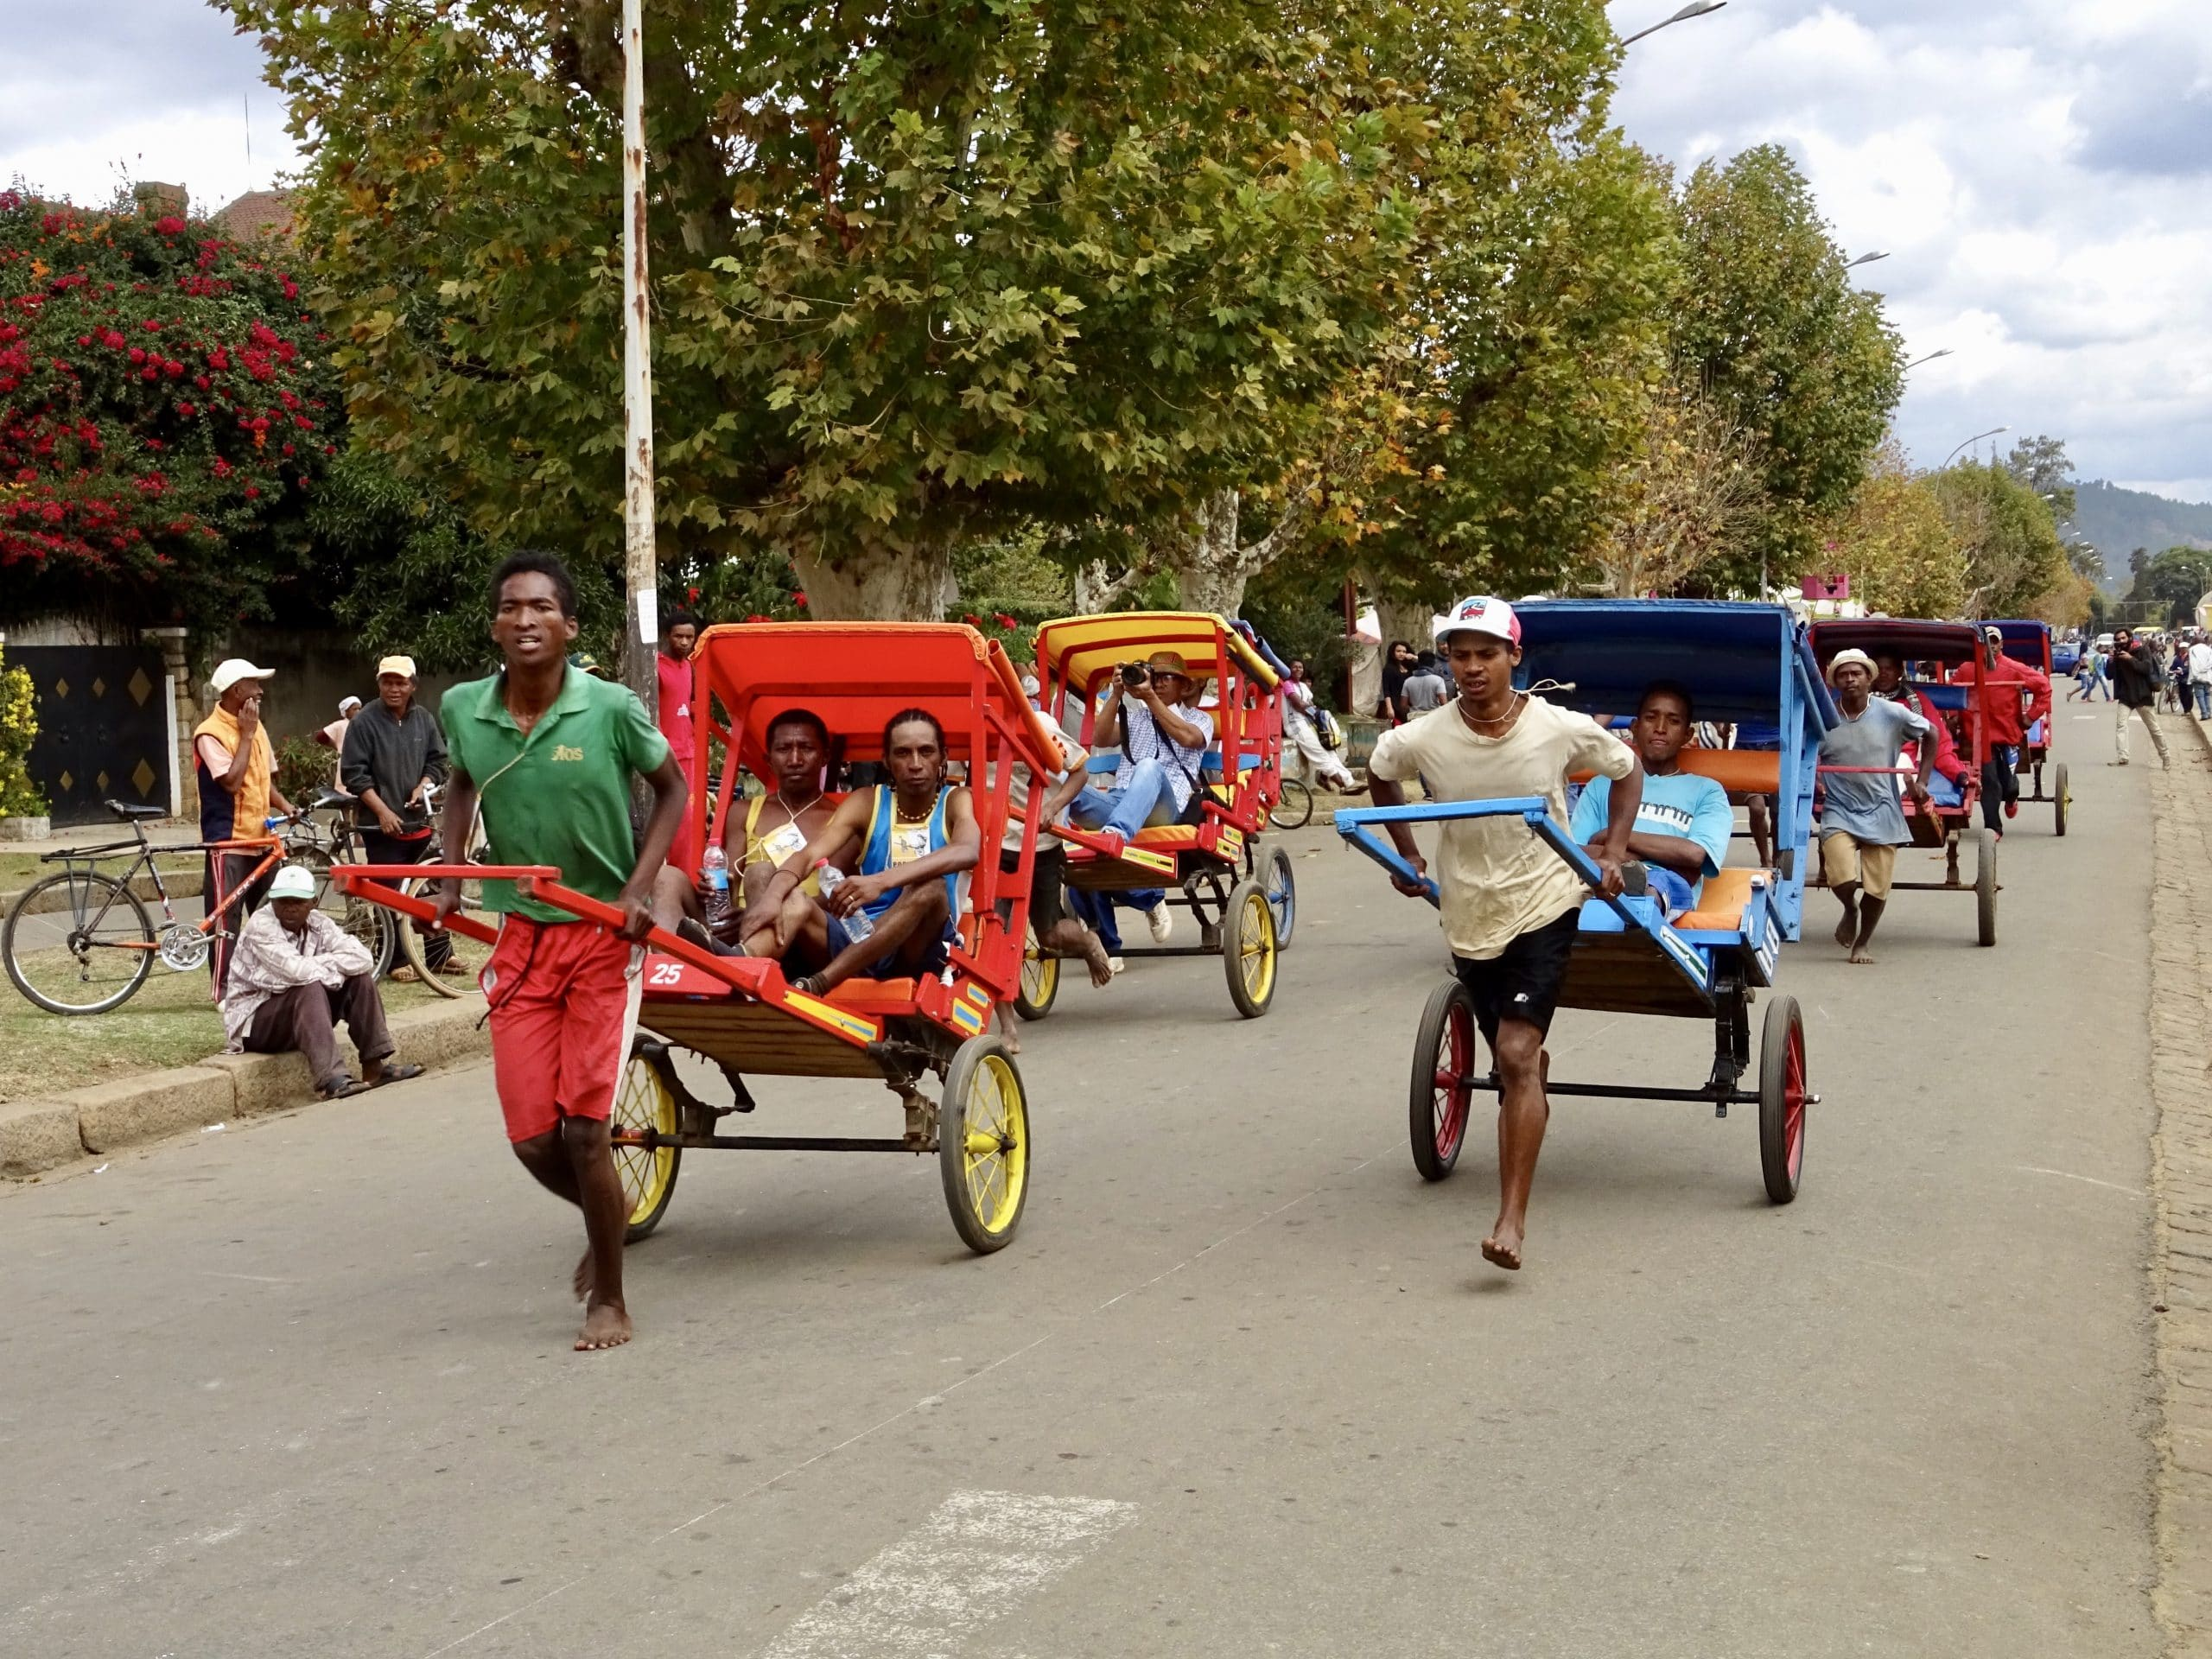 Pousse pousse taxi's in Antsirabe